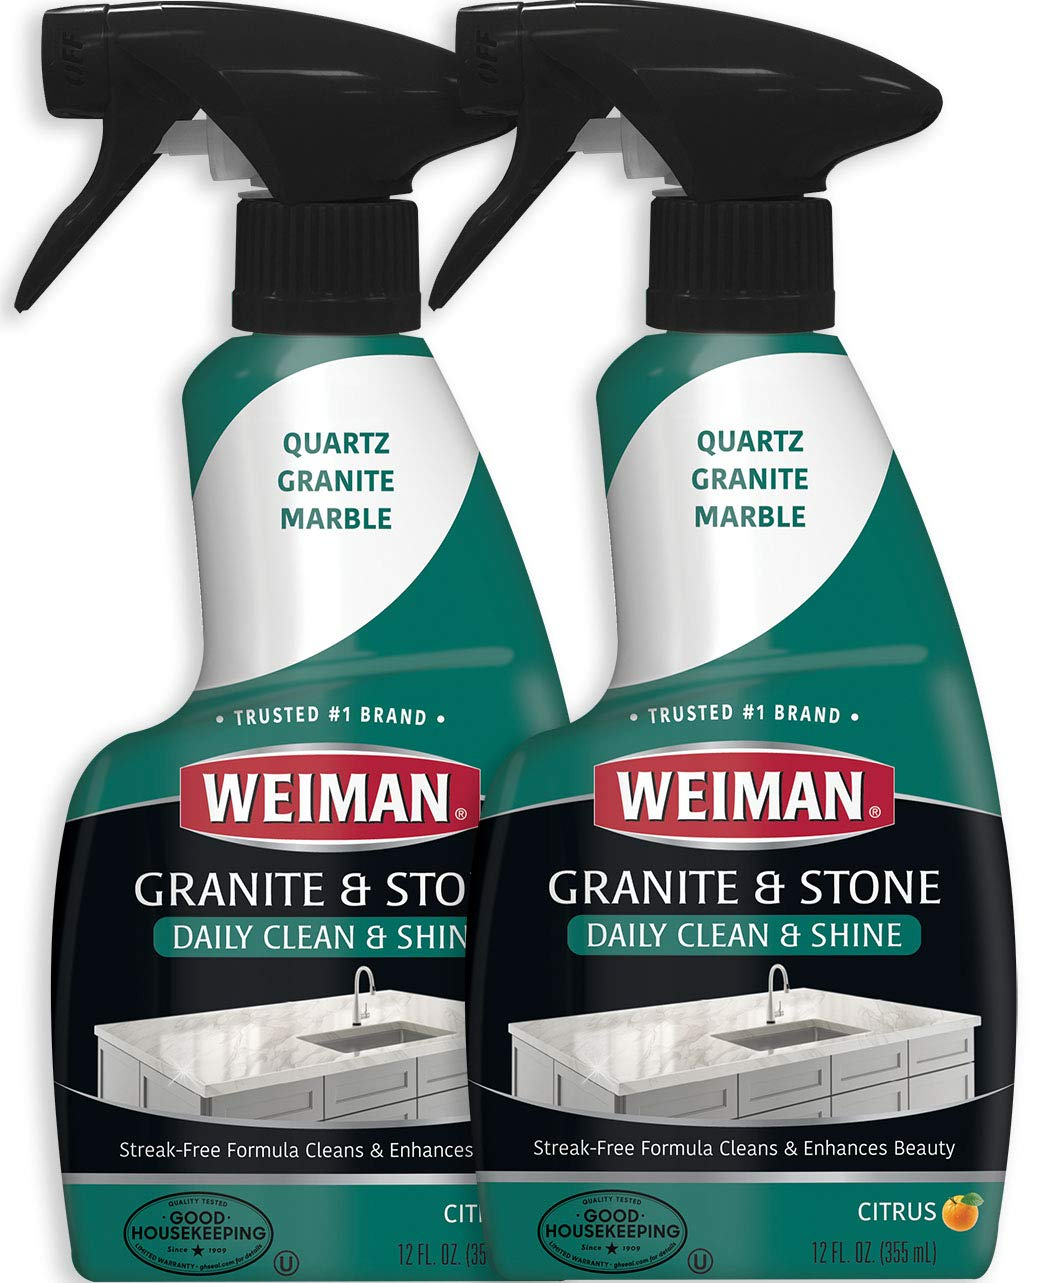 Weiman Granite Cleaner and Polish - 12 Ounce (2 Pack) - Non-Toxic Safe for Granite Marble Soapstone Quartz Quartzite Slate Limestone Corian Laminate Tile Countertop by Weiman